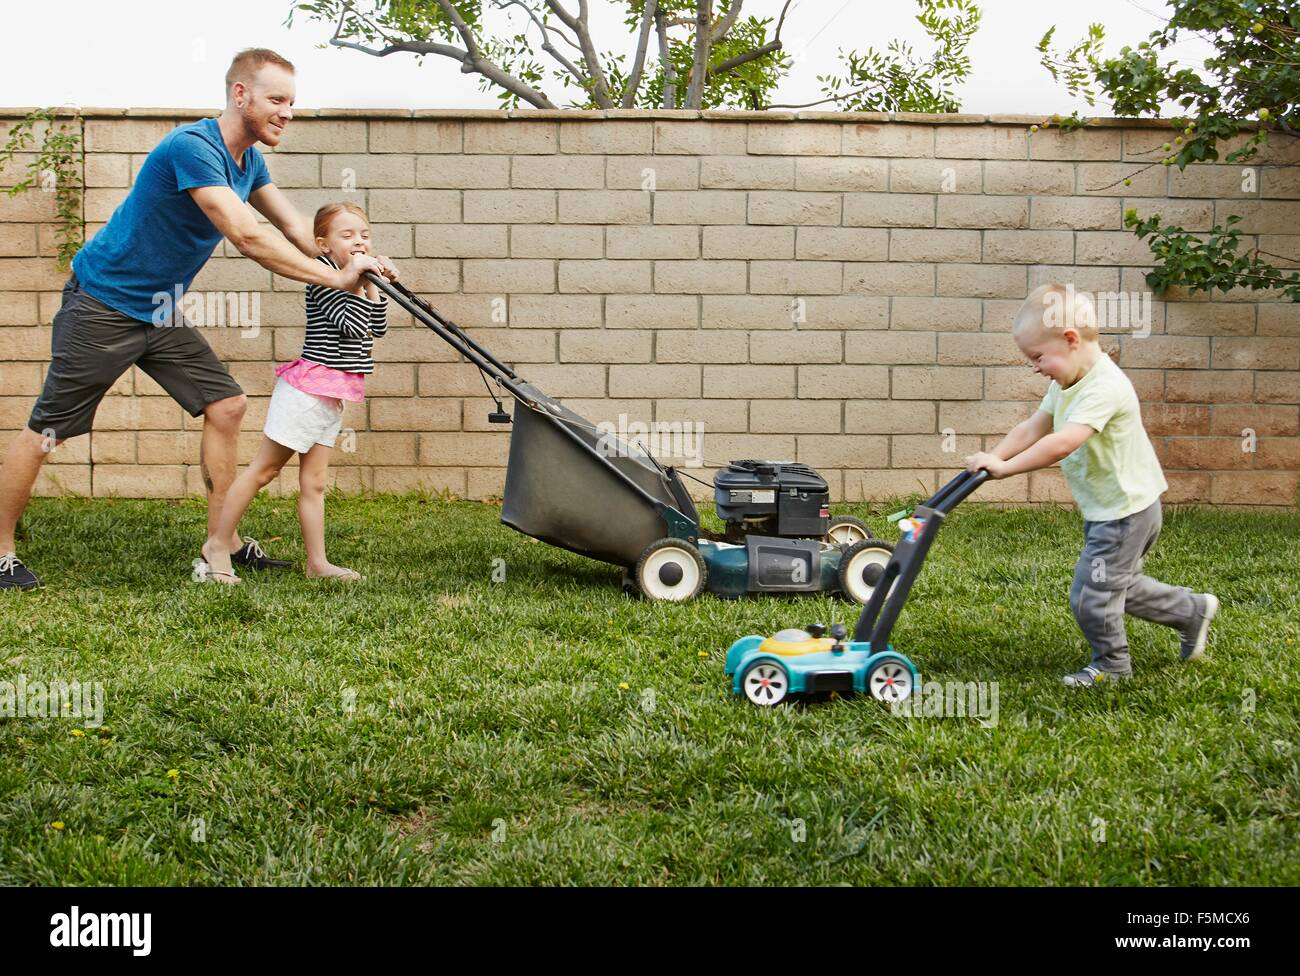 [Image: family-mowing-lawn-in-backyard-F5MCX6.jpg]